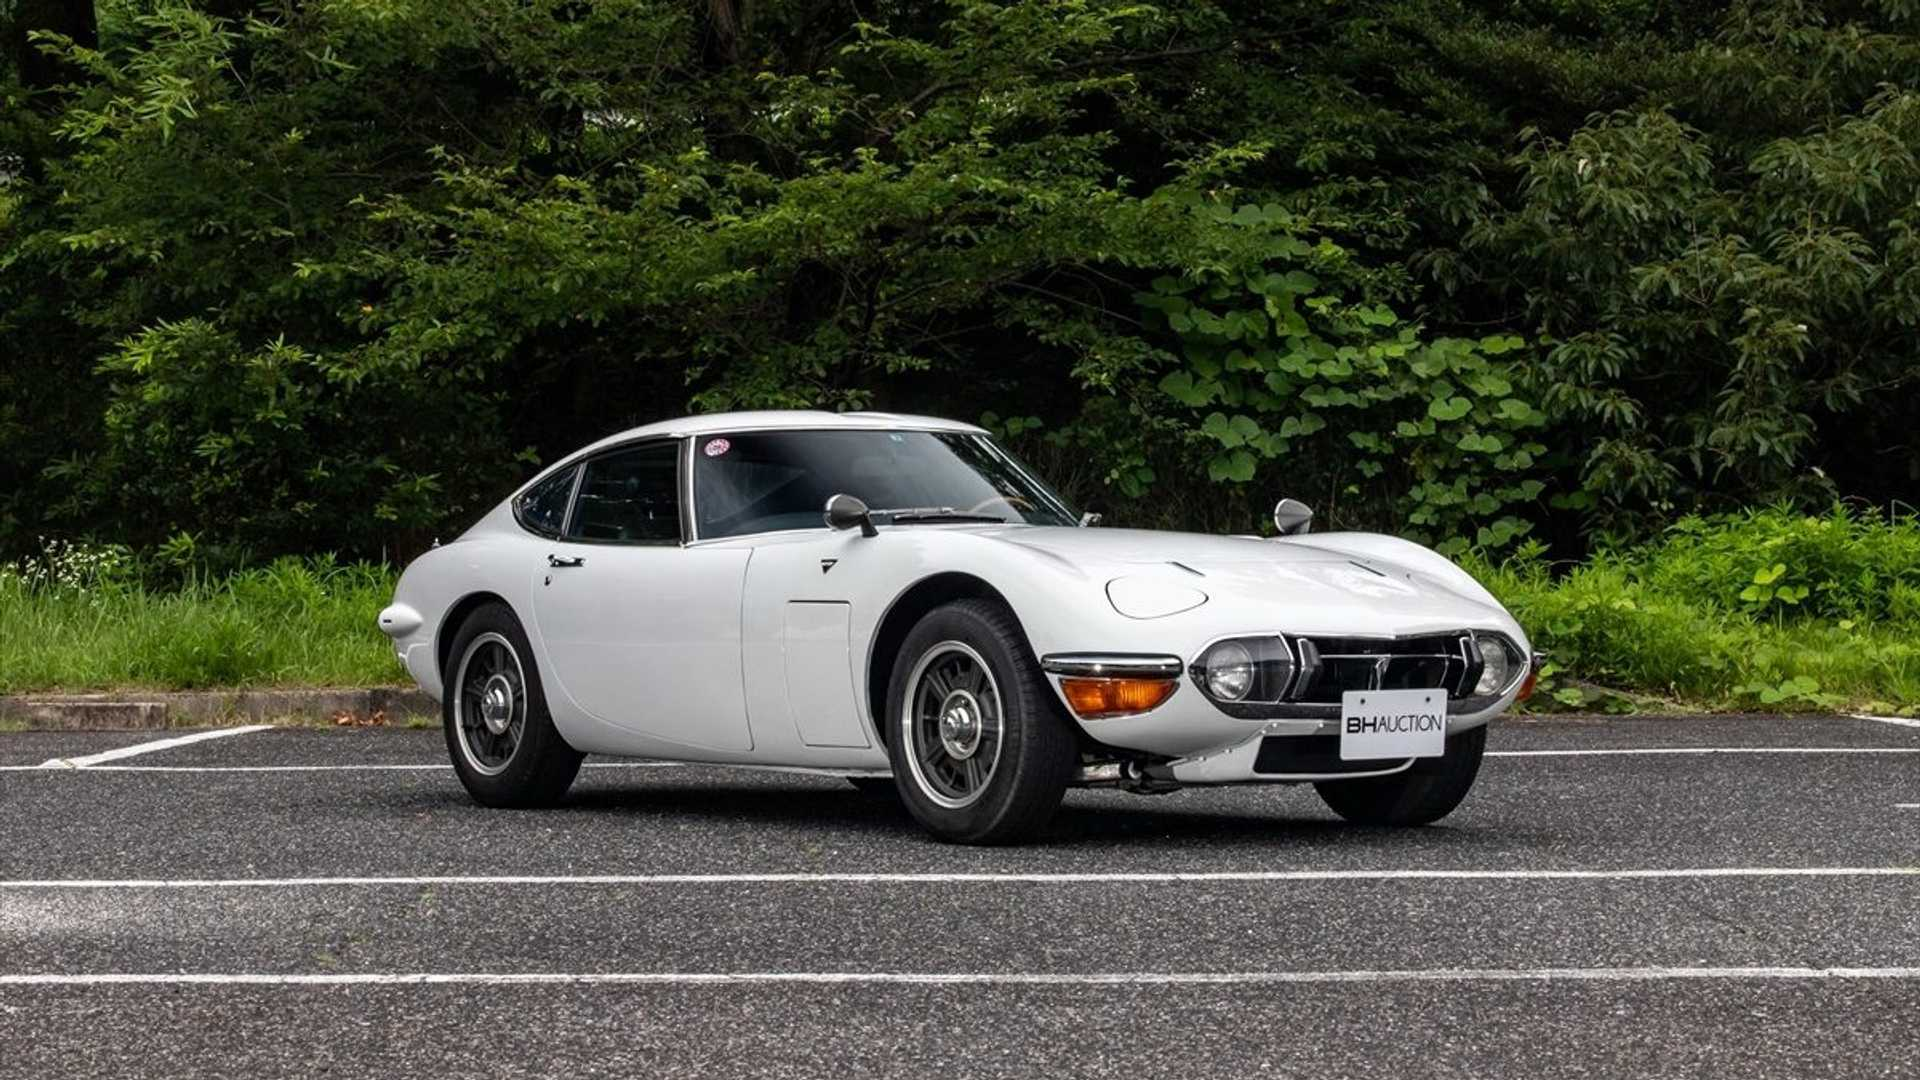 No Surprise: Japanese Cars Have Hit Collector Car Status